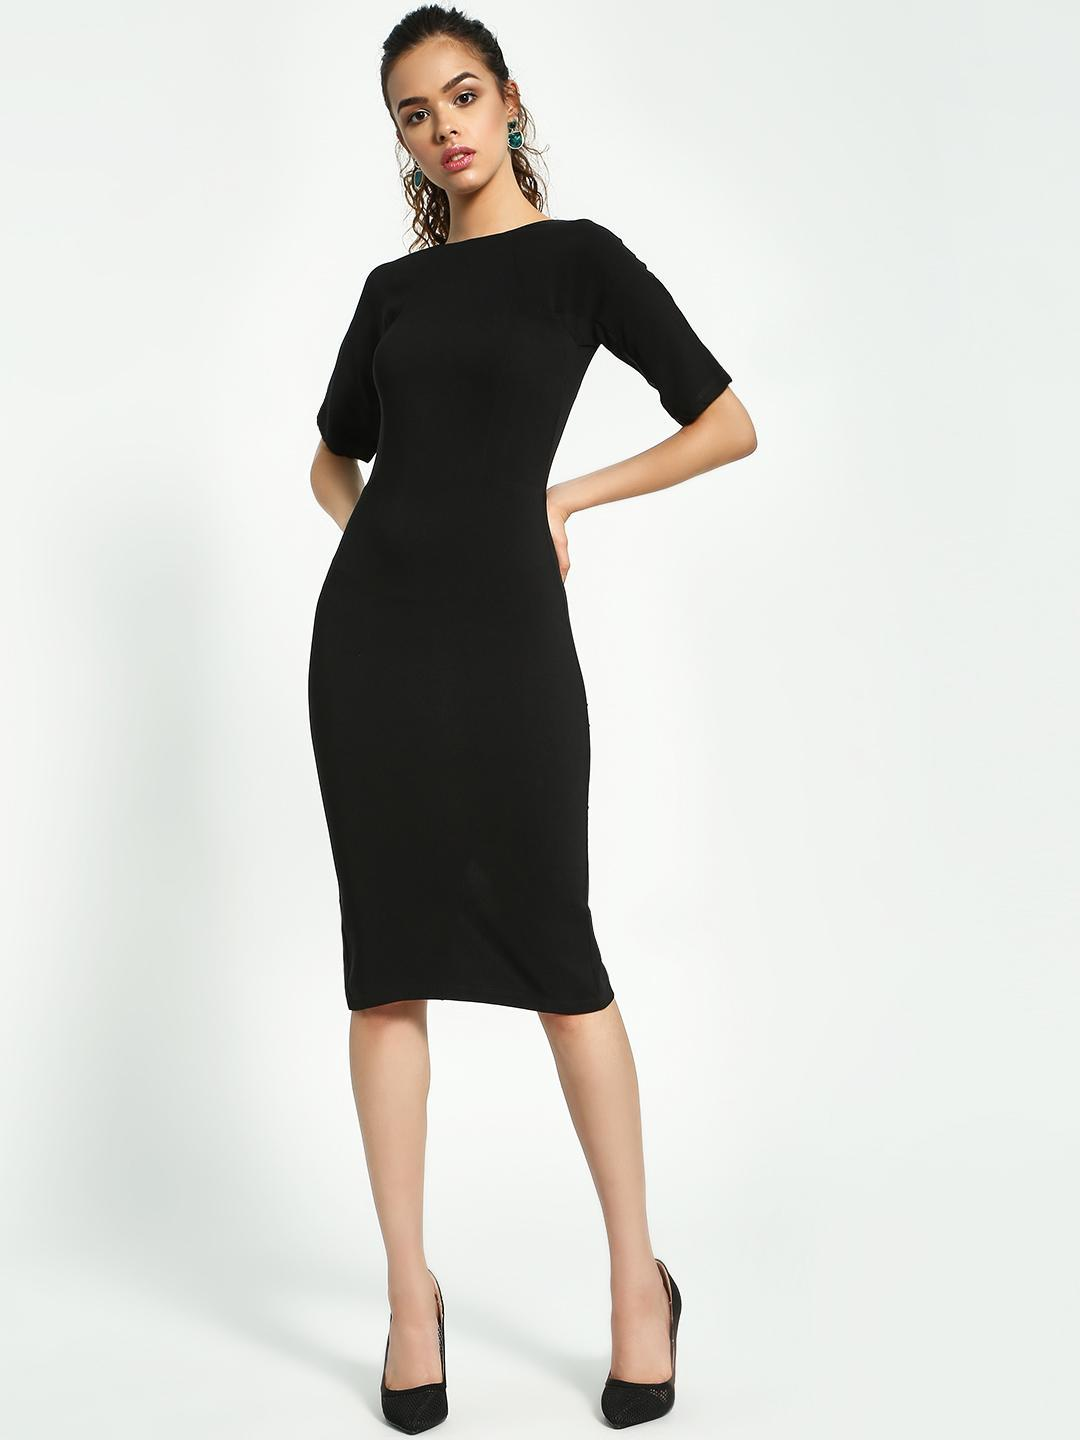 KOOVS Black Tailored Fit Pencil Dress 1